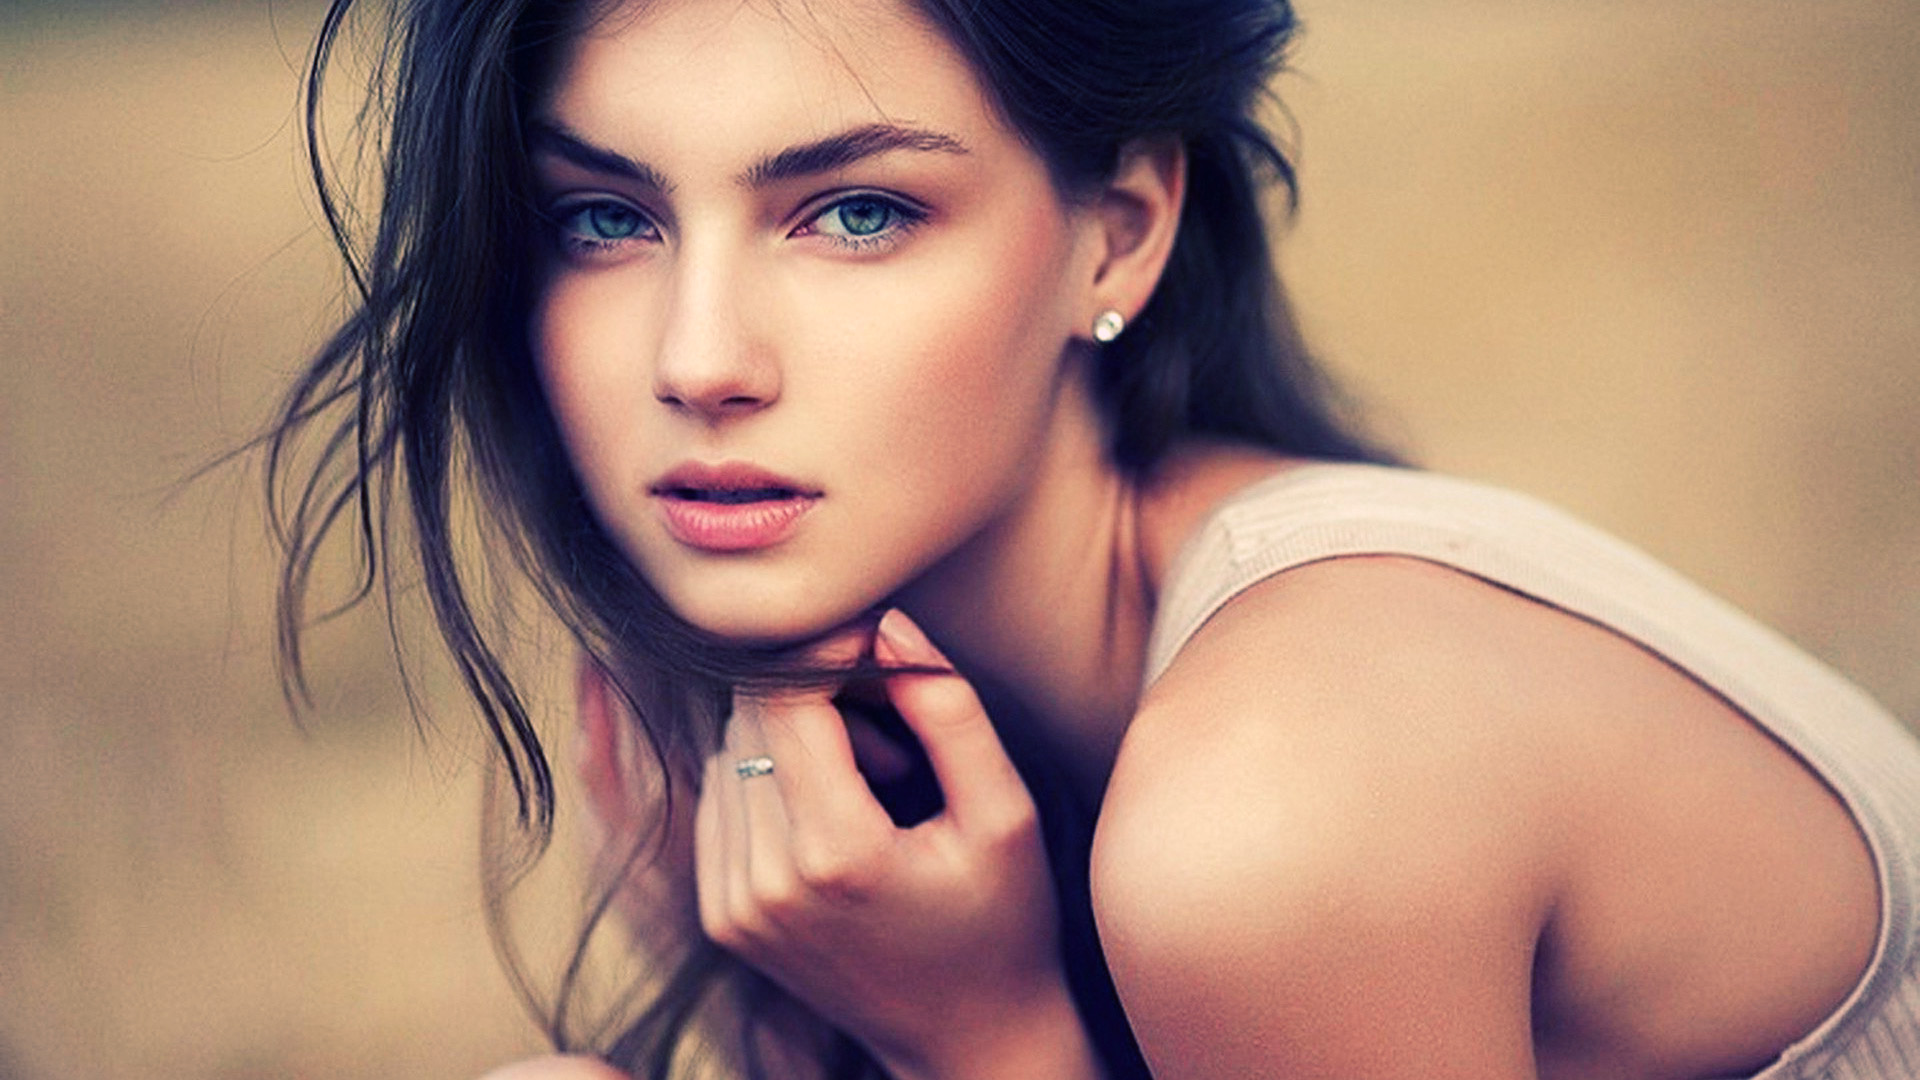 Beautiful Girls Backgrounds, Hq, Aurea Streight - Girl With Blue Eyes And Black Hair , HD Wallpaper & Backgrounds